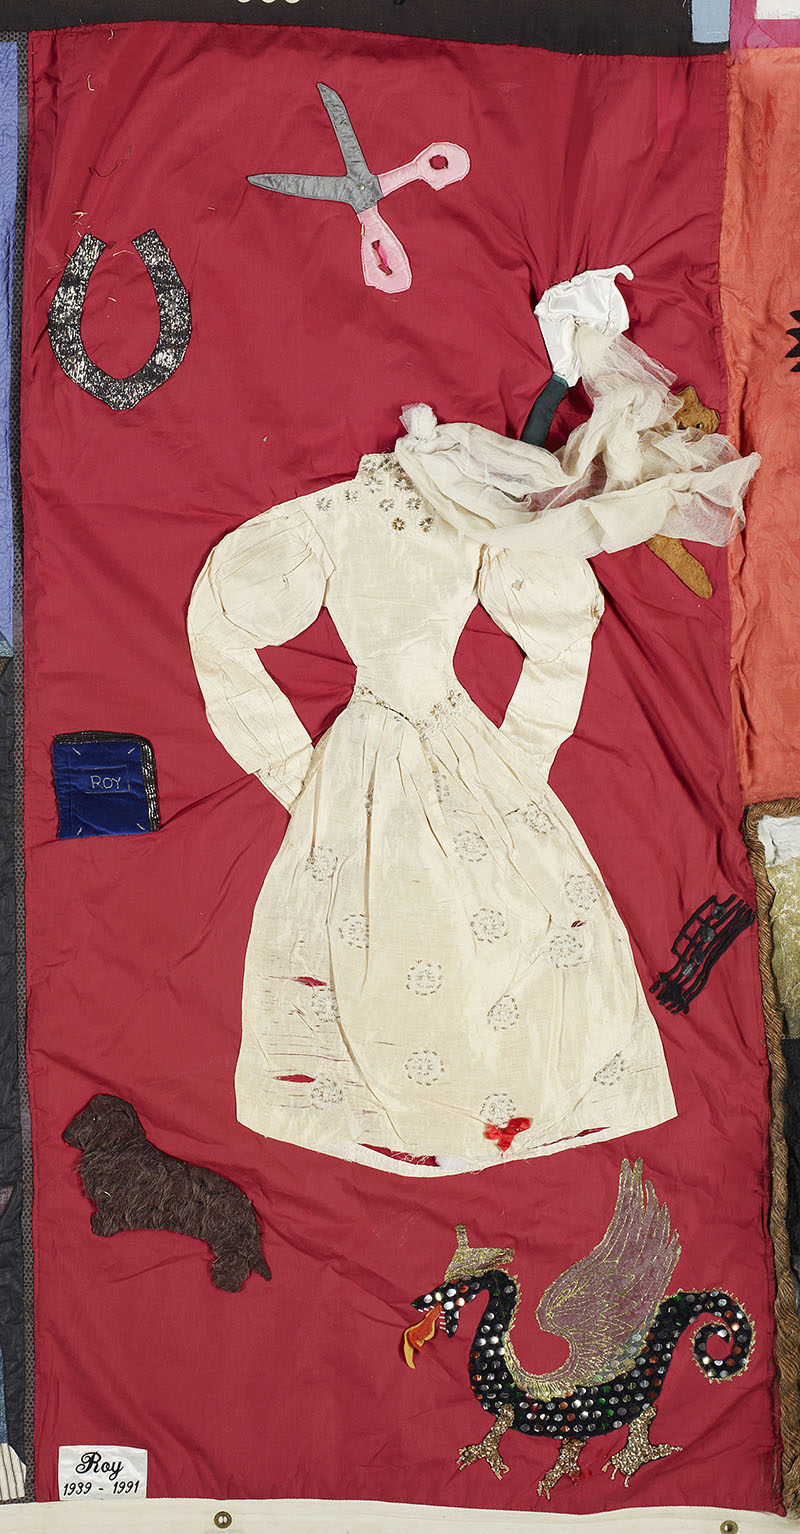 A panel from the NZ Aids Memorial Quilt. It is red with a dress on it and fabric scissors and a horseshoe and dog sown in